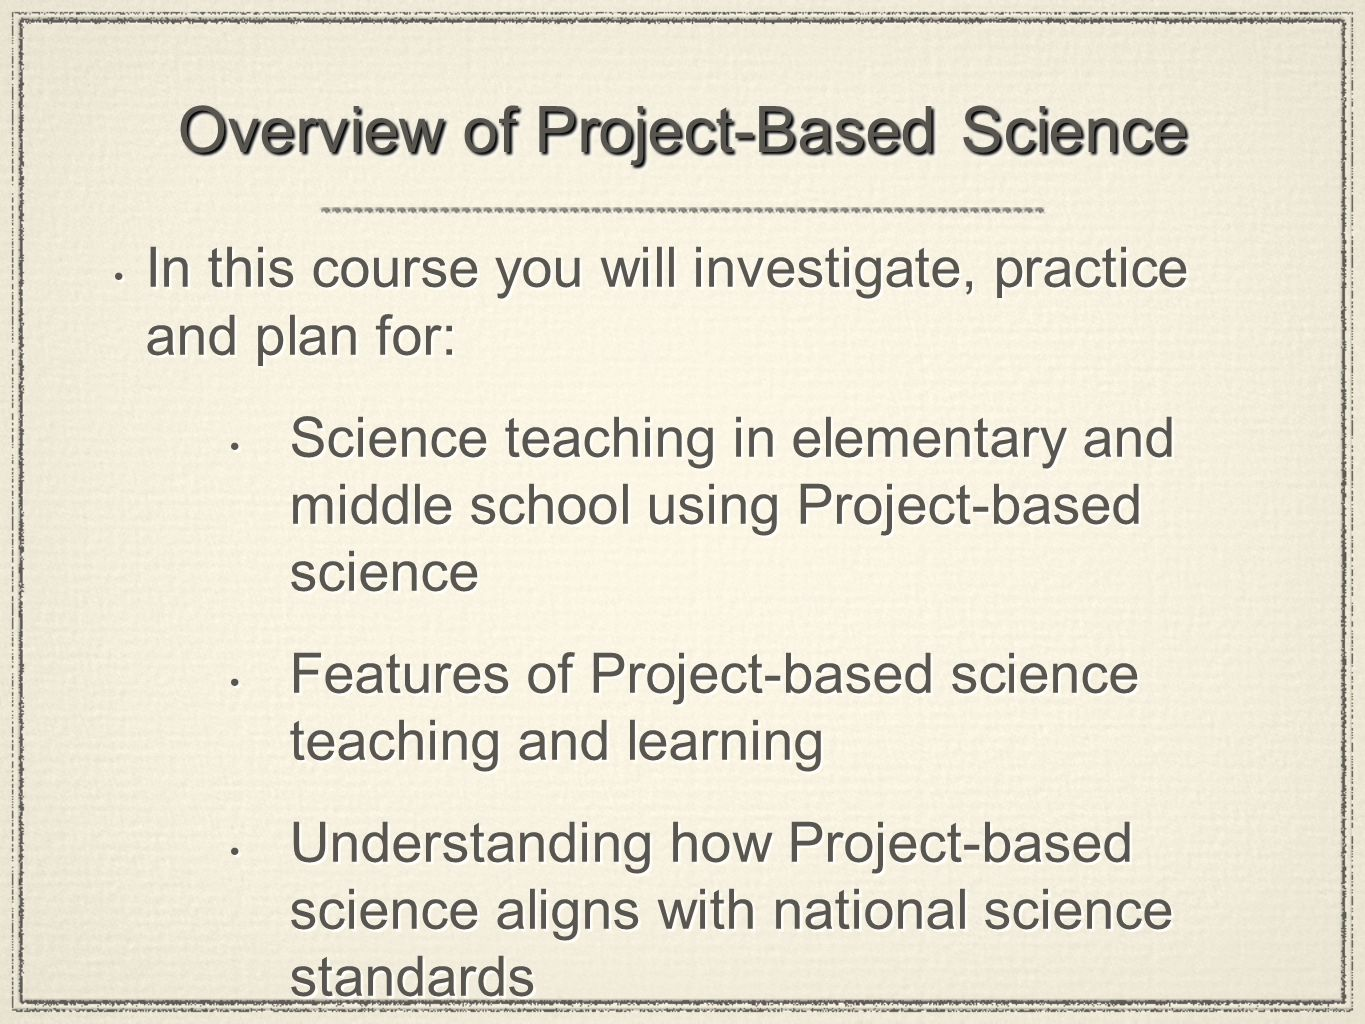 Overview of Project-Based Science In this course you will investigate, practice and plan for: Science teaching in elementary and middle school using Project-based science Features of Project-based science teaching and learning Understanding how Project-based science aligns with national science standards In this course you will investigate, practice and plan for: Science teaching in elementary and middle school using Project-based science Features of Project-based science teaching and learning Understanding how Project-based science aligns with national science standards